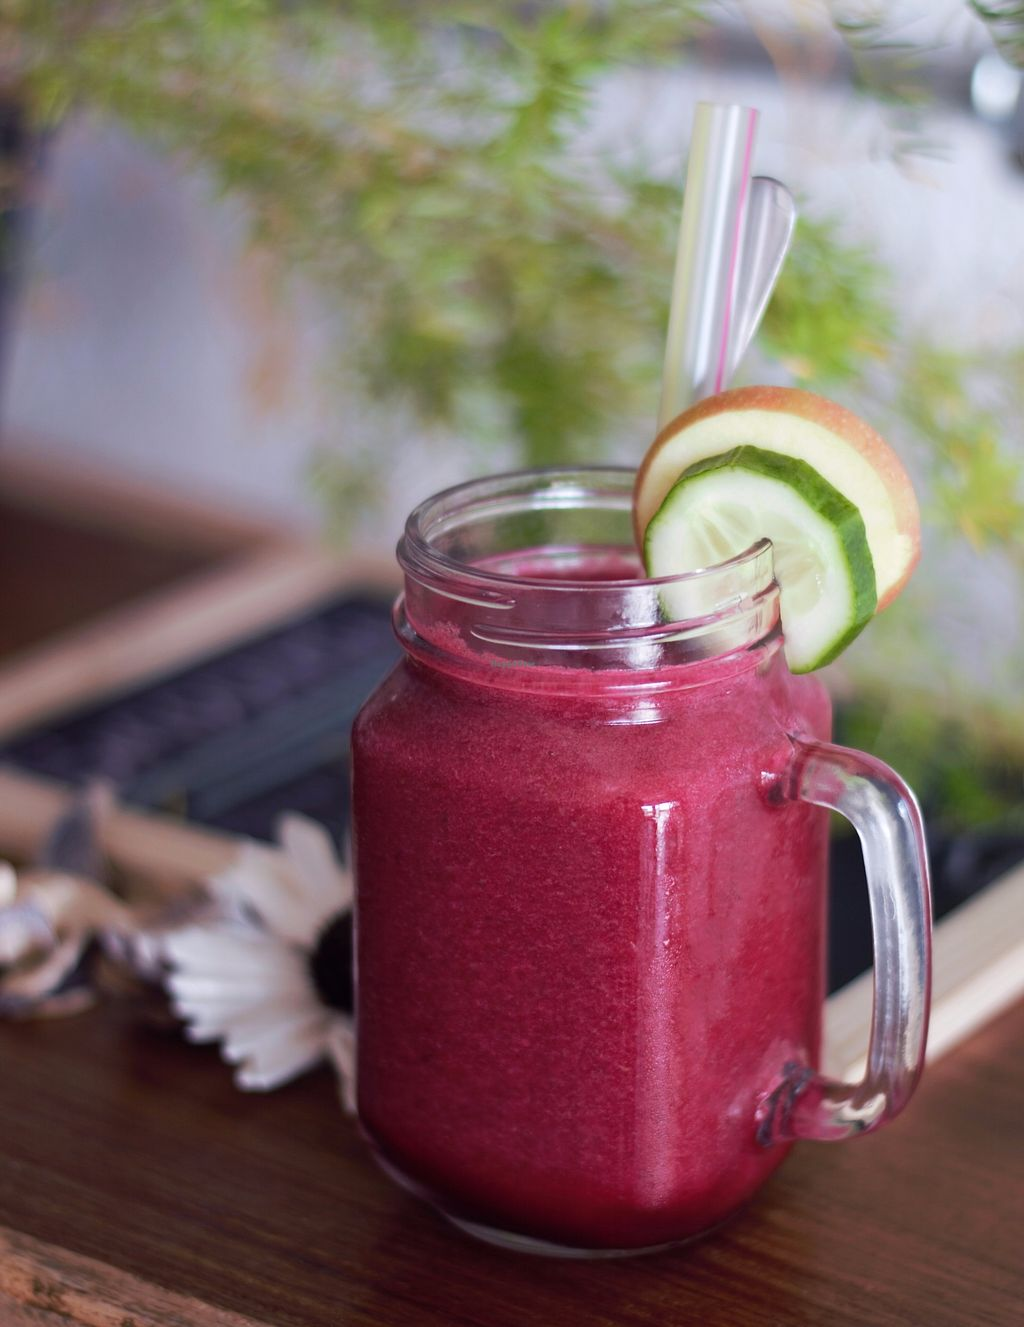 """Photo of Eatwithfingers Cafe  by <a href=""""/members/profile/EatwithfingersCaf%C3%A9"""">EatwithfingersCafé</a> <br/>Beetroot Smoothie <br/> August 27, 2017  - <a href='/contact/abuse/image/98498/297882'>Report</a>"""